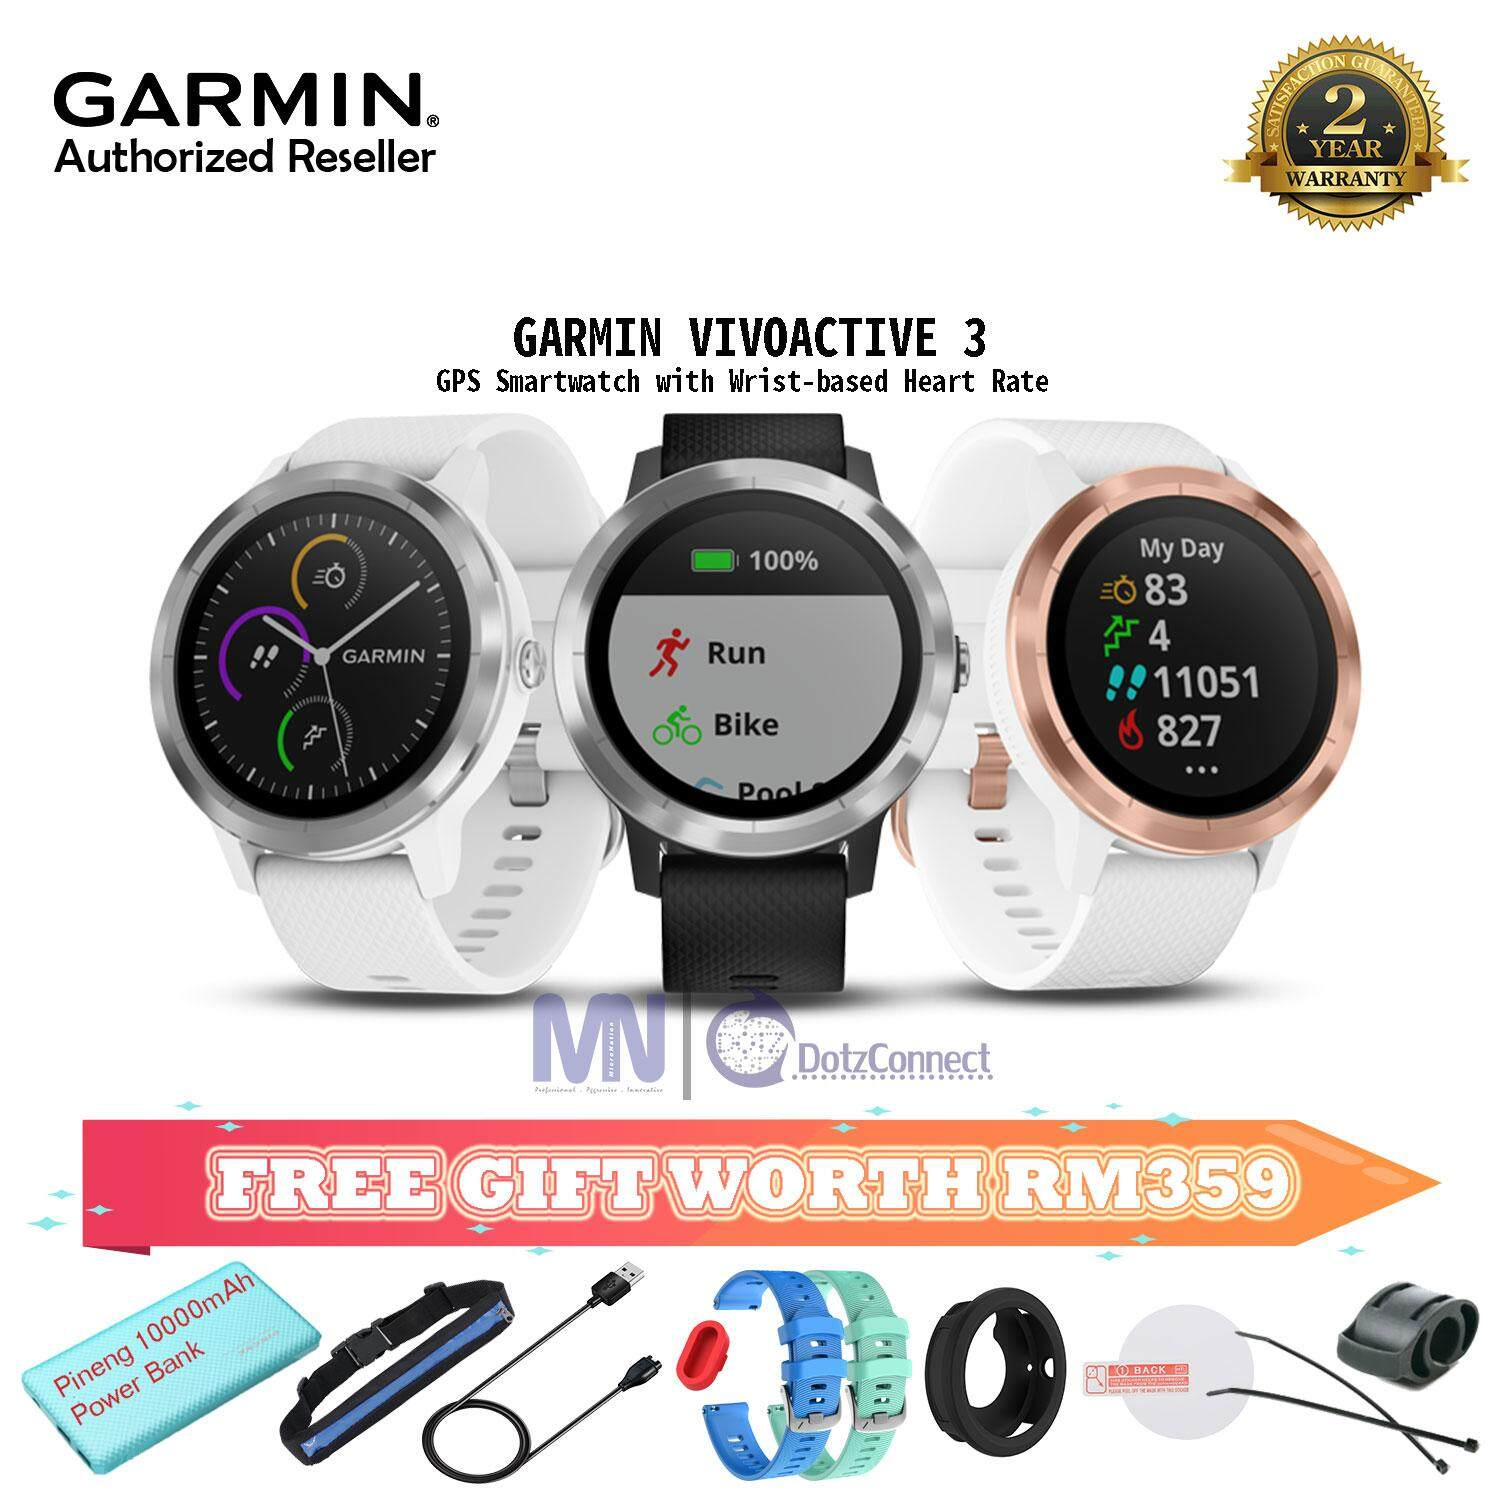 Garmin Vivoactive 3 / Vivoactive 3 Music GPS Smartwatch with Wrist-based Heart Rate-(non music)